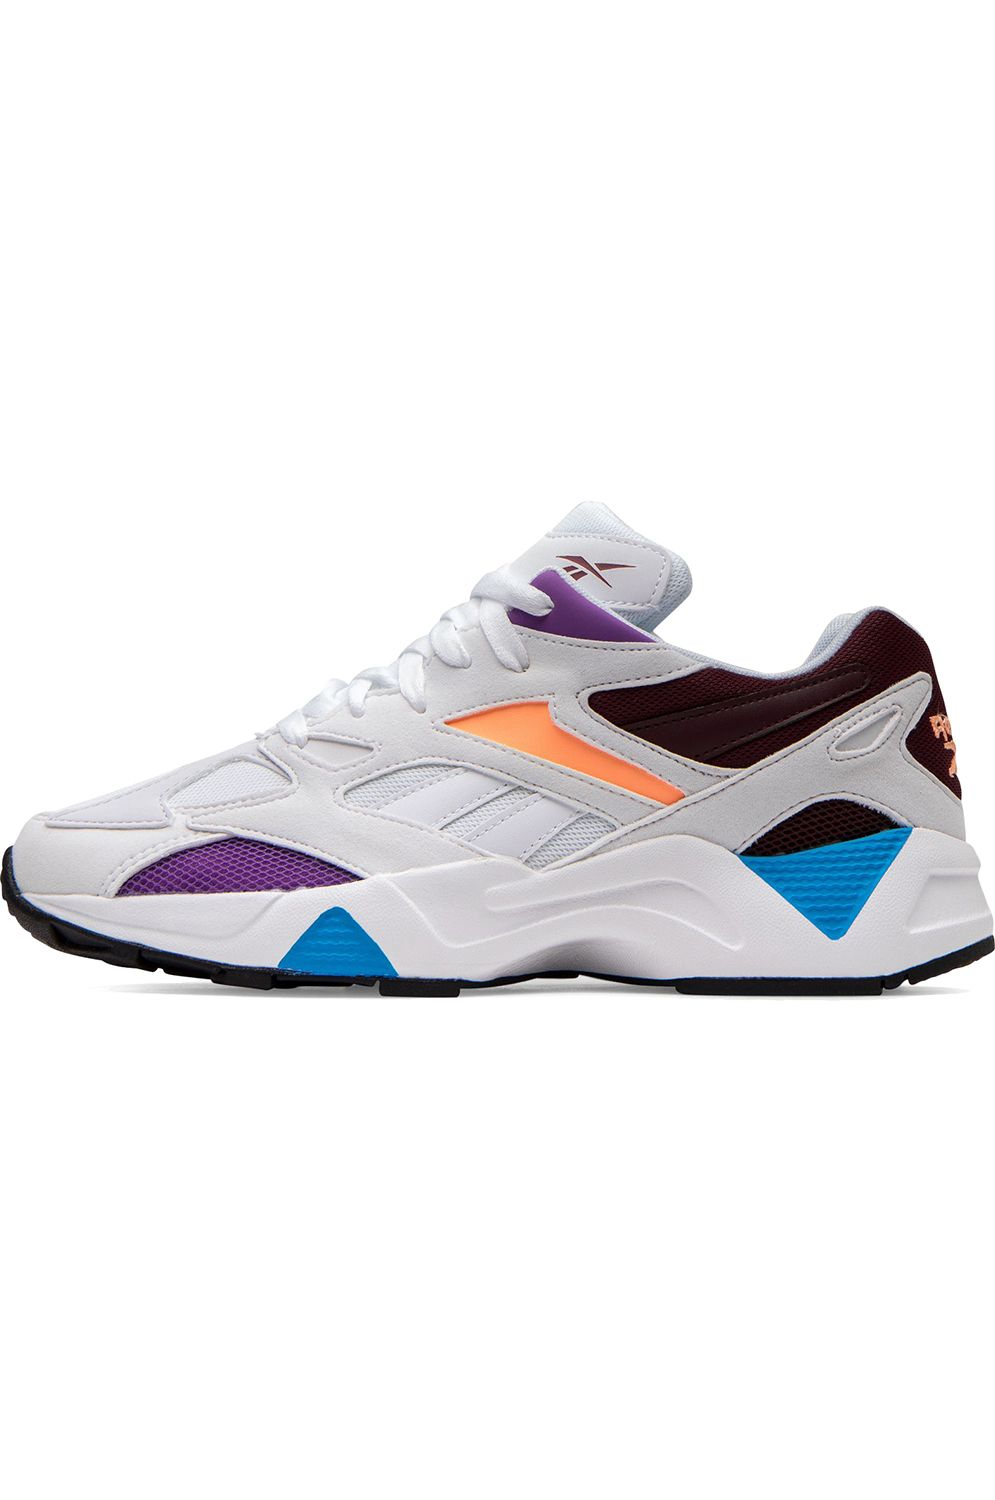 Reebok Shoes AZTREK 96 White/Porcelain/Maroon